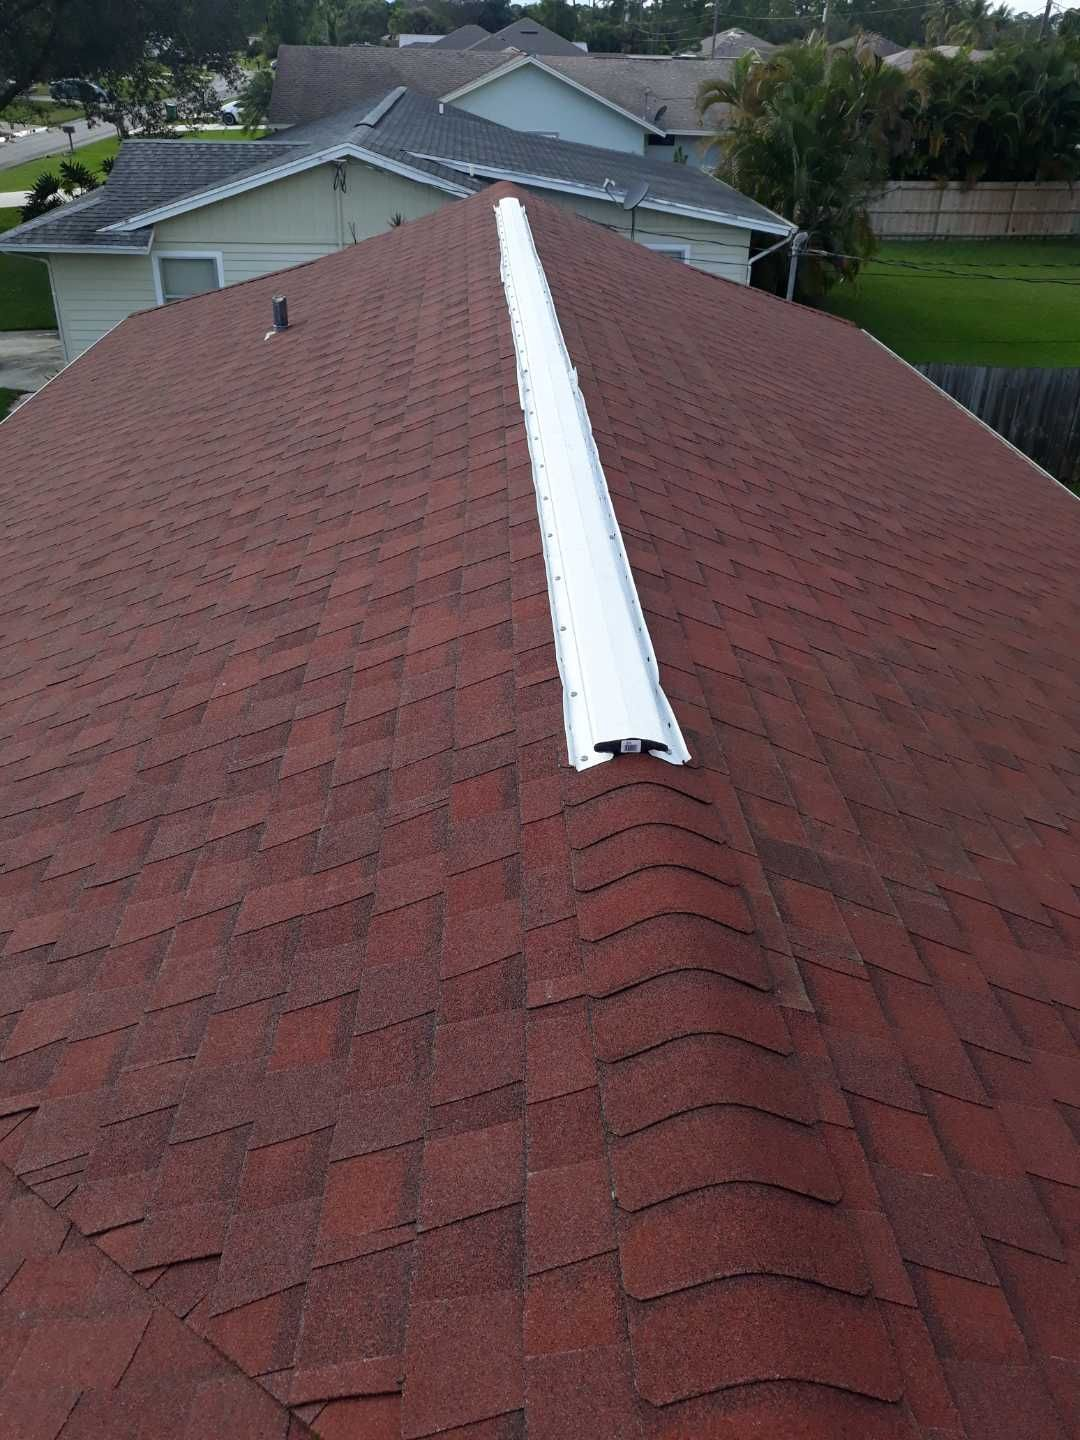 Wind Mitigation Code Roof Replacement near Jensen Beach FL